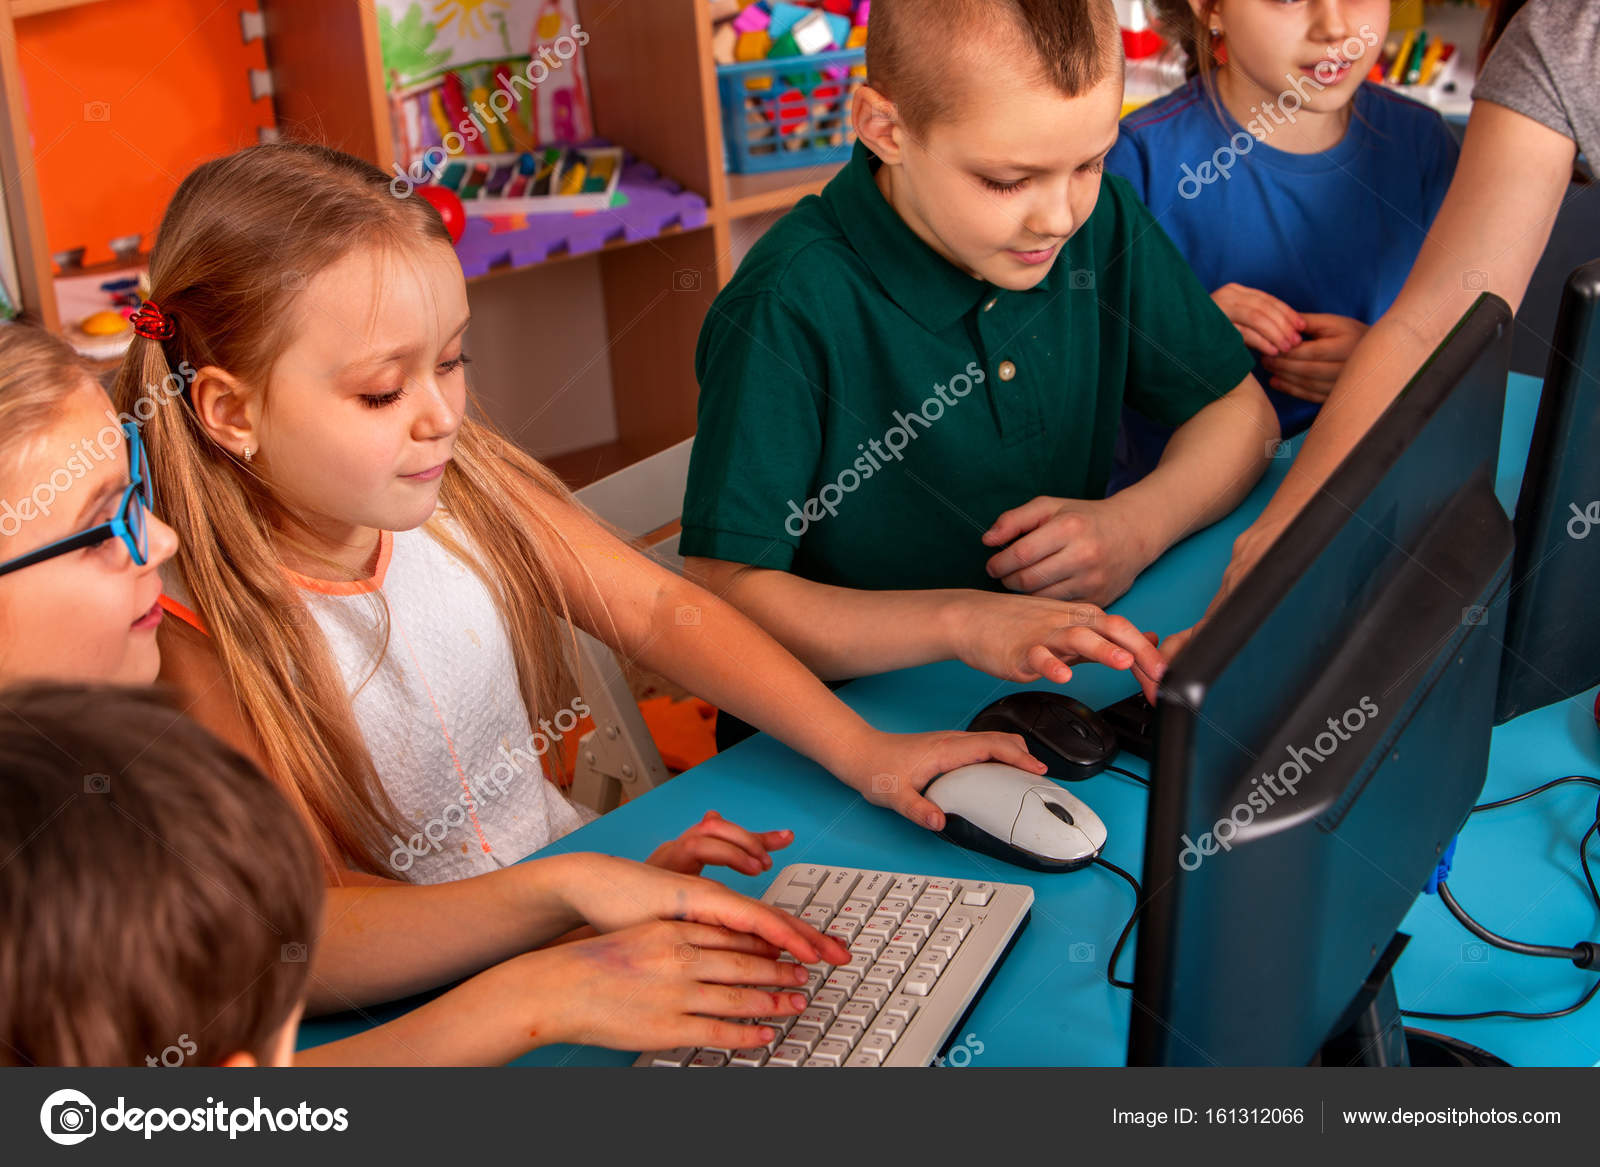 Children Computer Class Us For Education And Video Game Boys Girls In Childrens Club Who Spend Many Hours Behind Monitor Harmful To Health